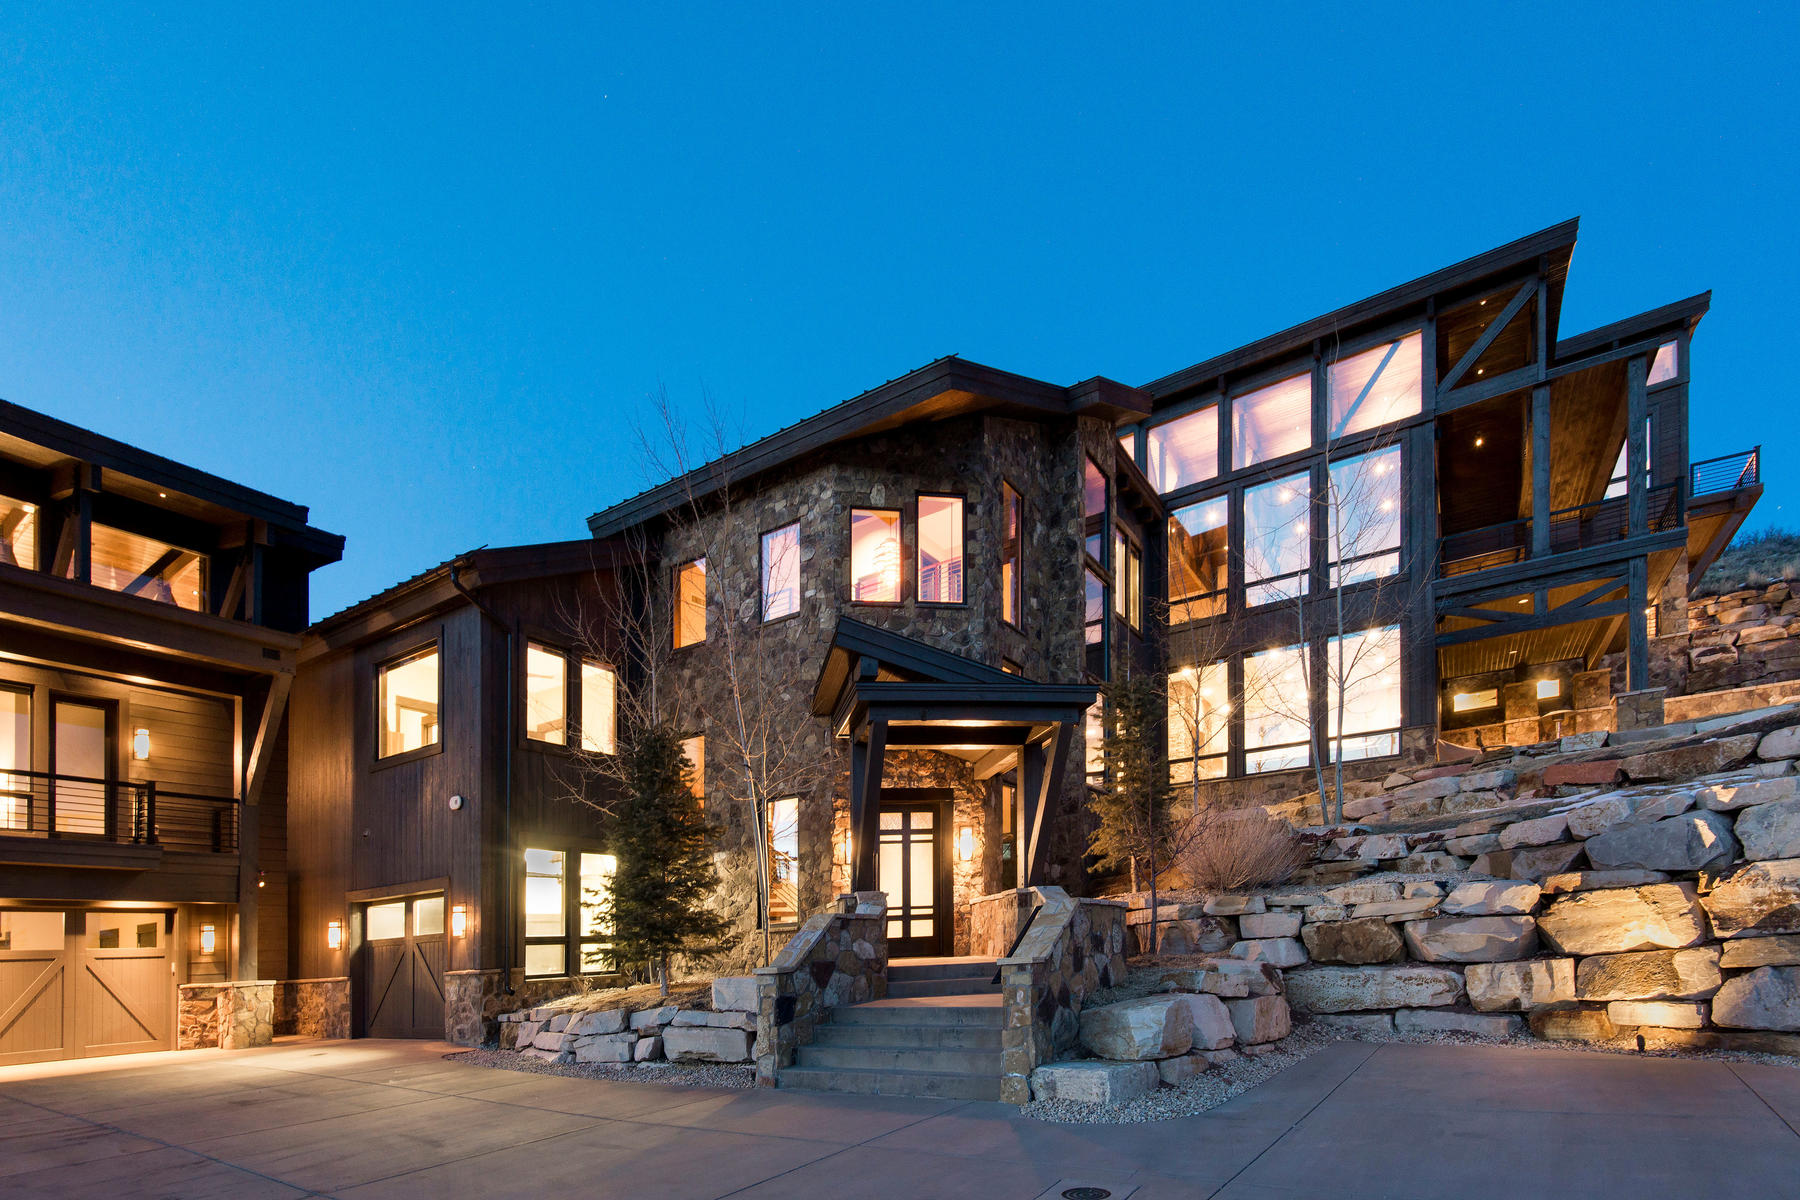 独户住宅 为 销售 在 Deer Valley Mountain Contemporary Masterpiece! 11380 N Snowtop Rd 帕克城, 犹他州 84060 美国